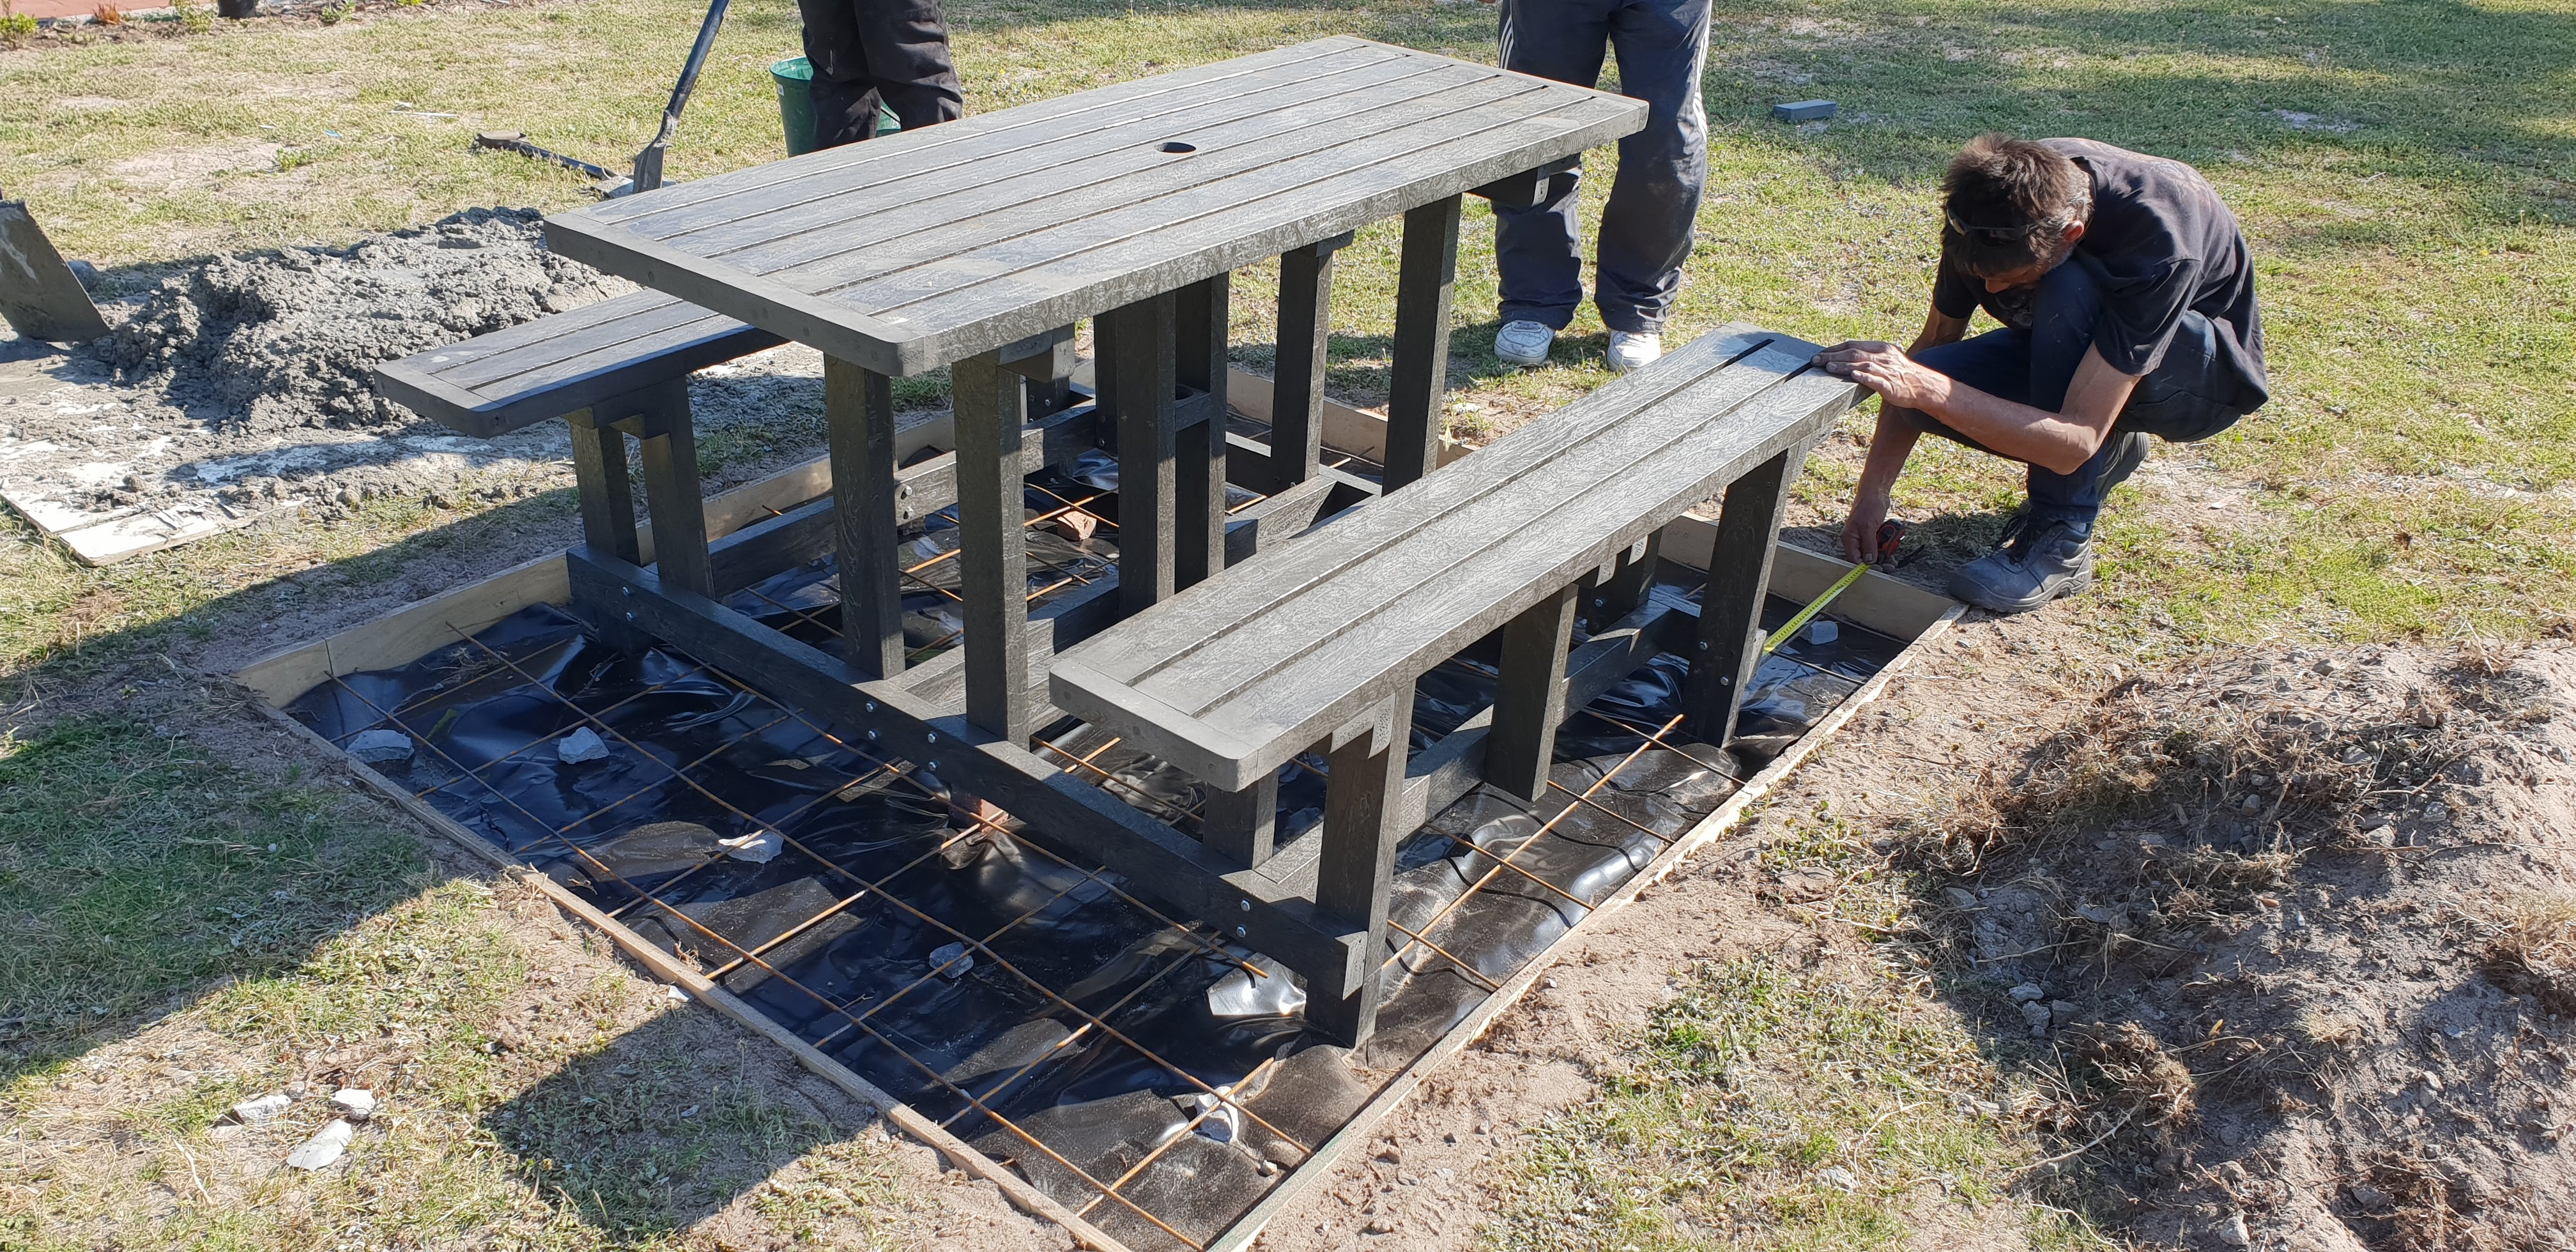 6 Seater Picnic Bench Set